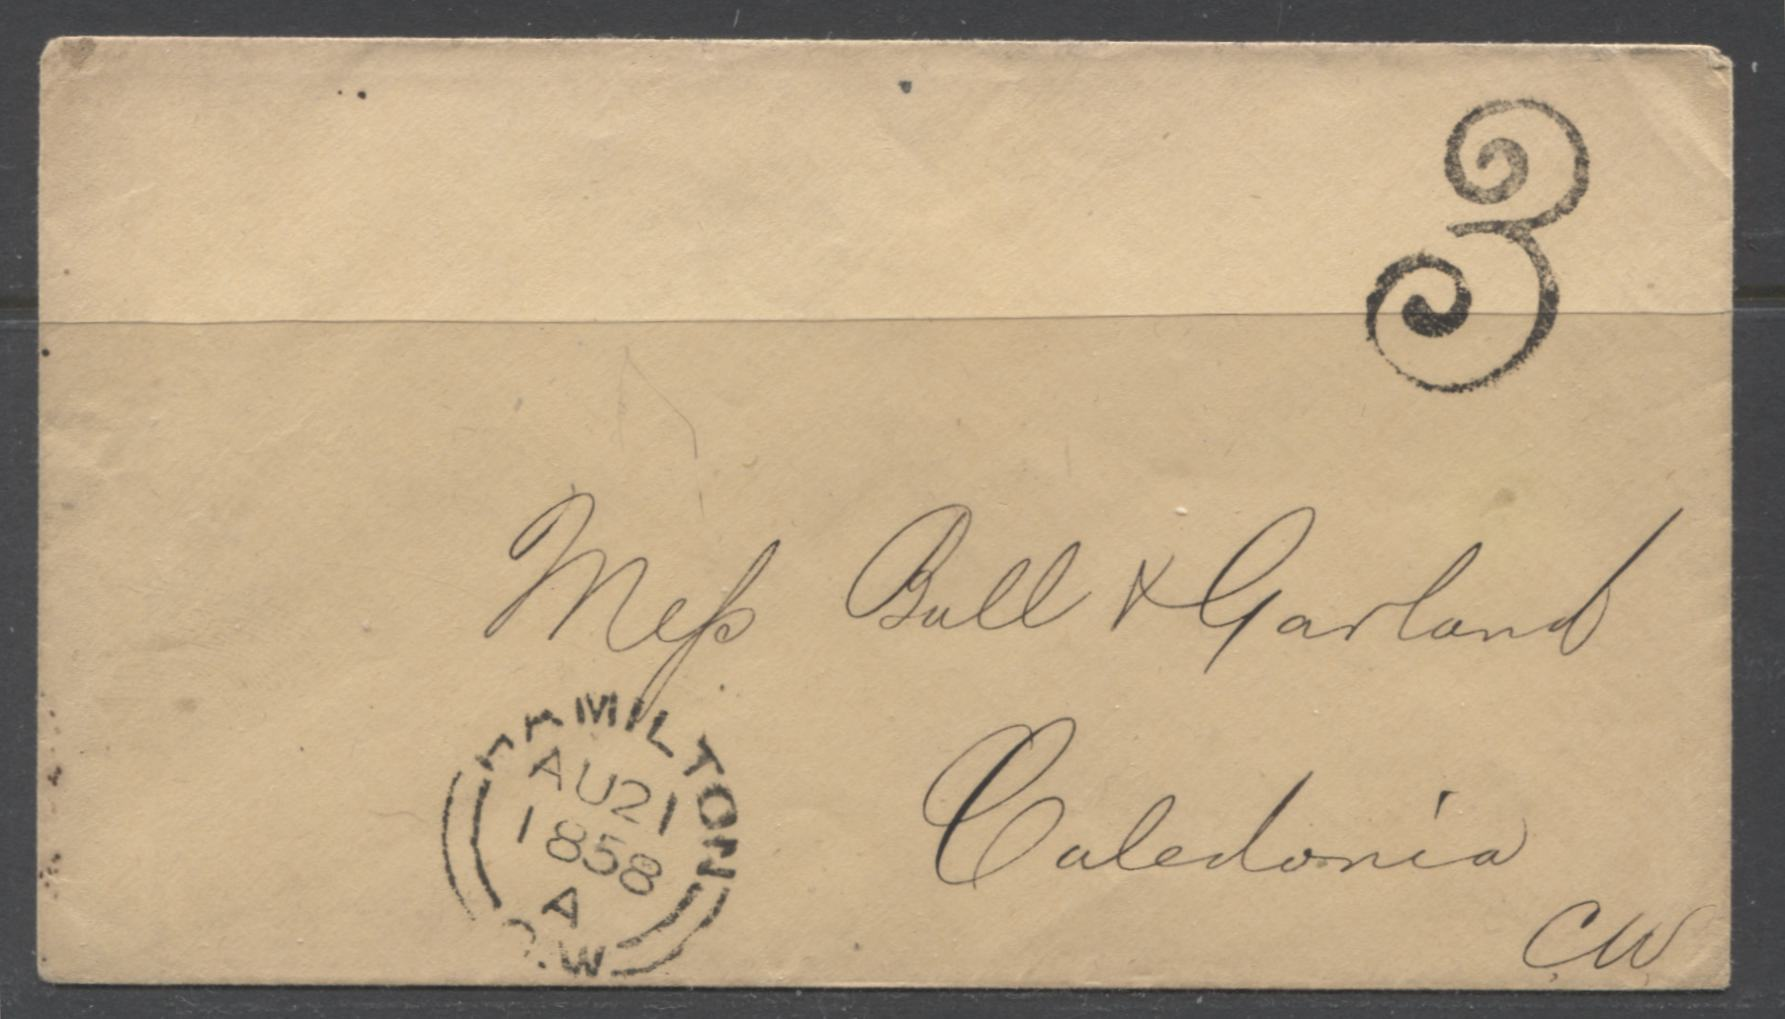 Superb 1858 Stampless Cover Sent From Hamilton to Caledonia Brixton Chrome